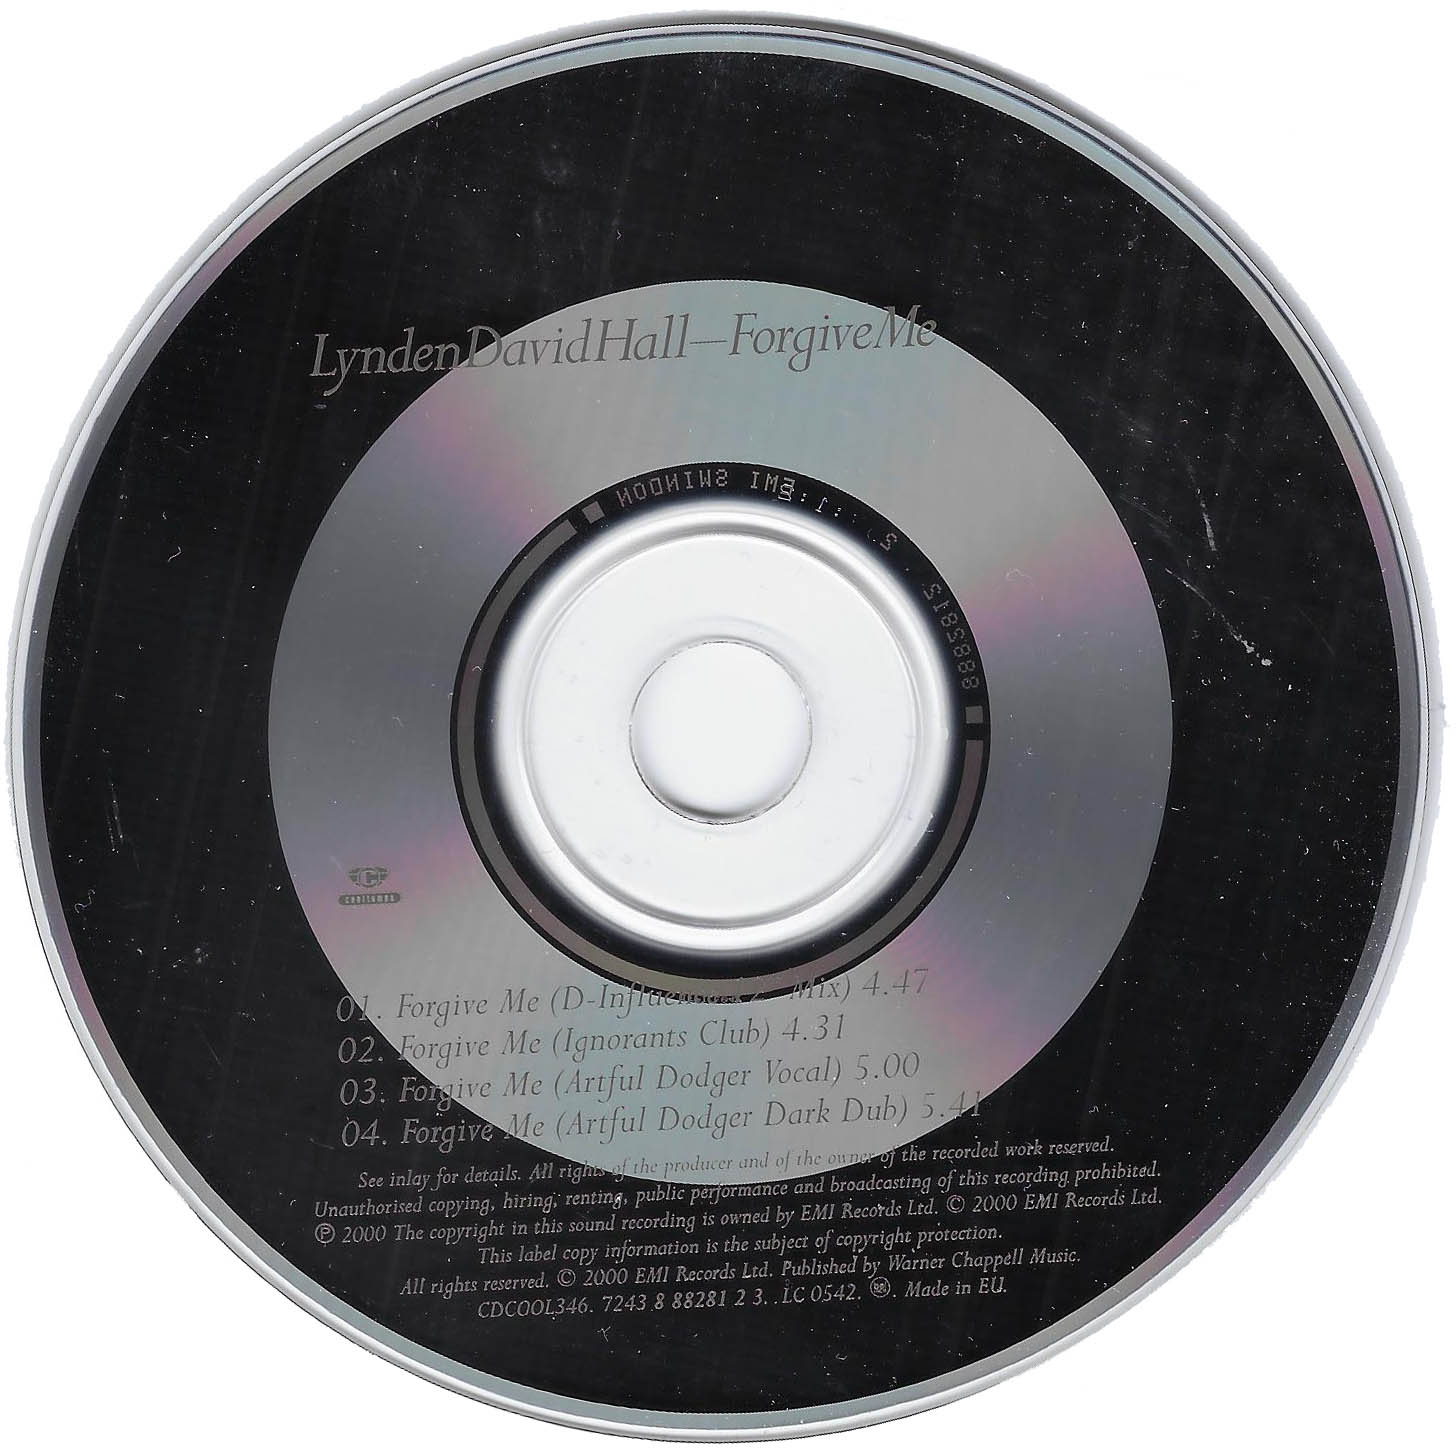 Lynden_David_Hall_Forgive_Me_CD_2